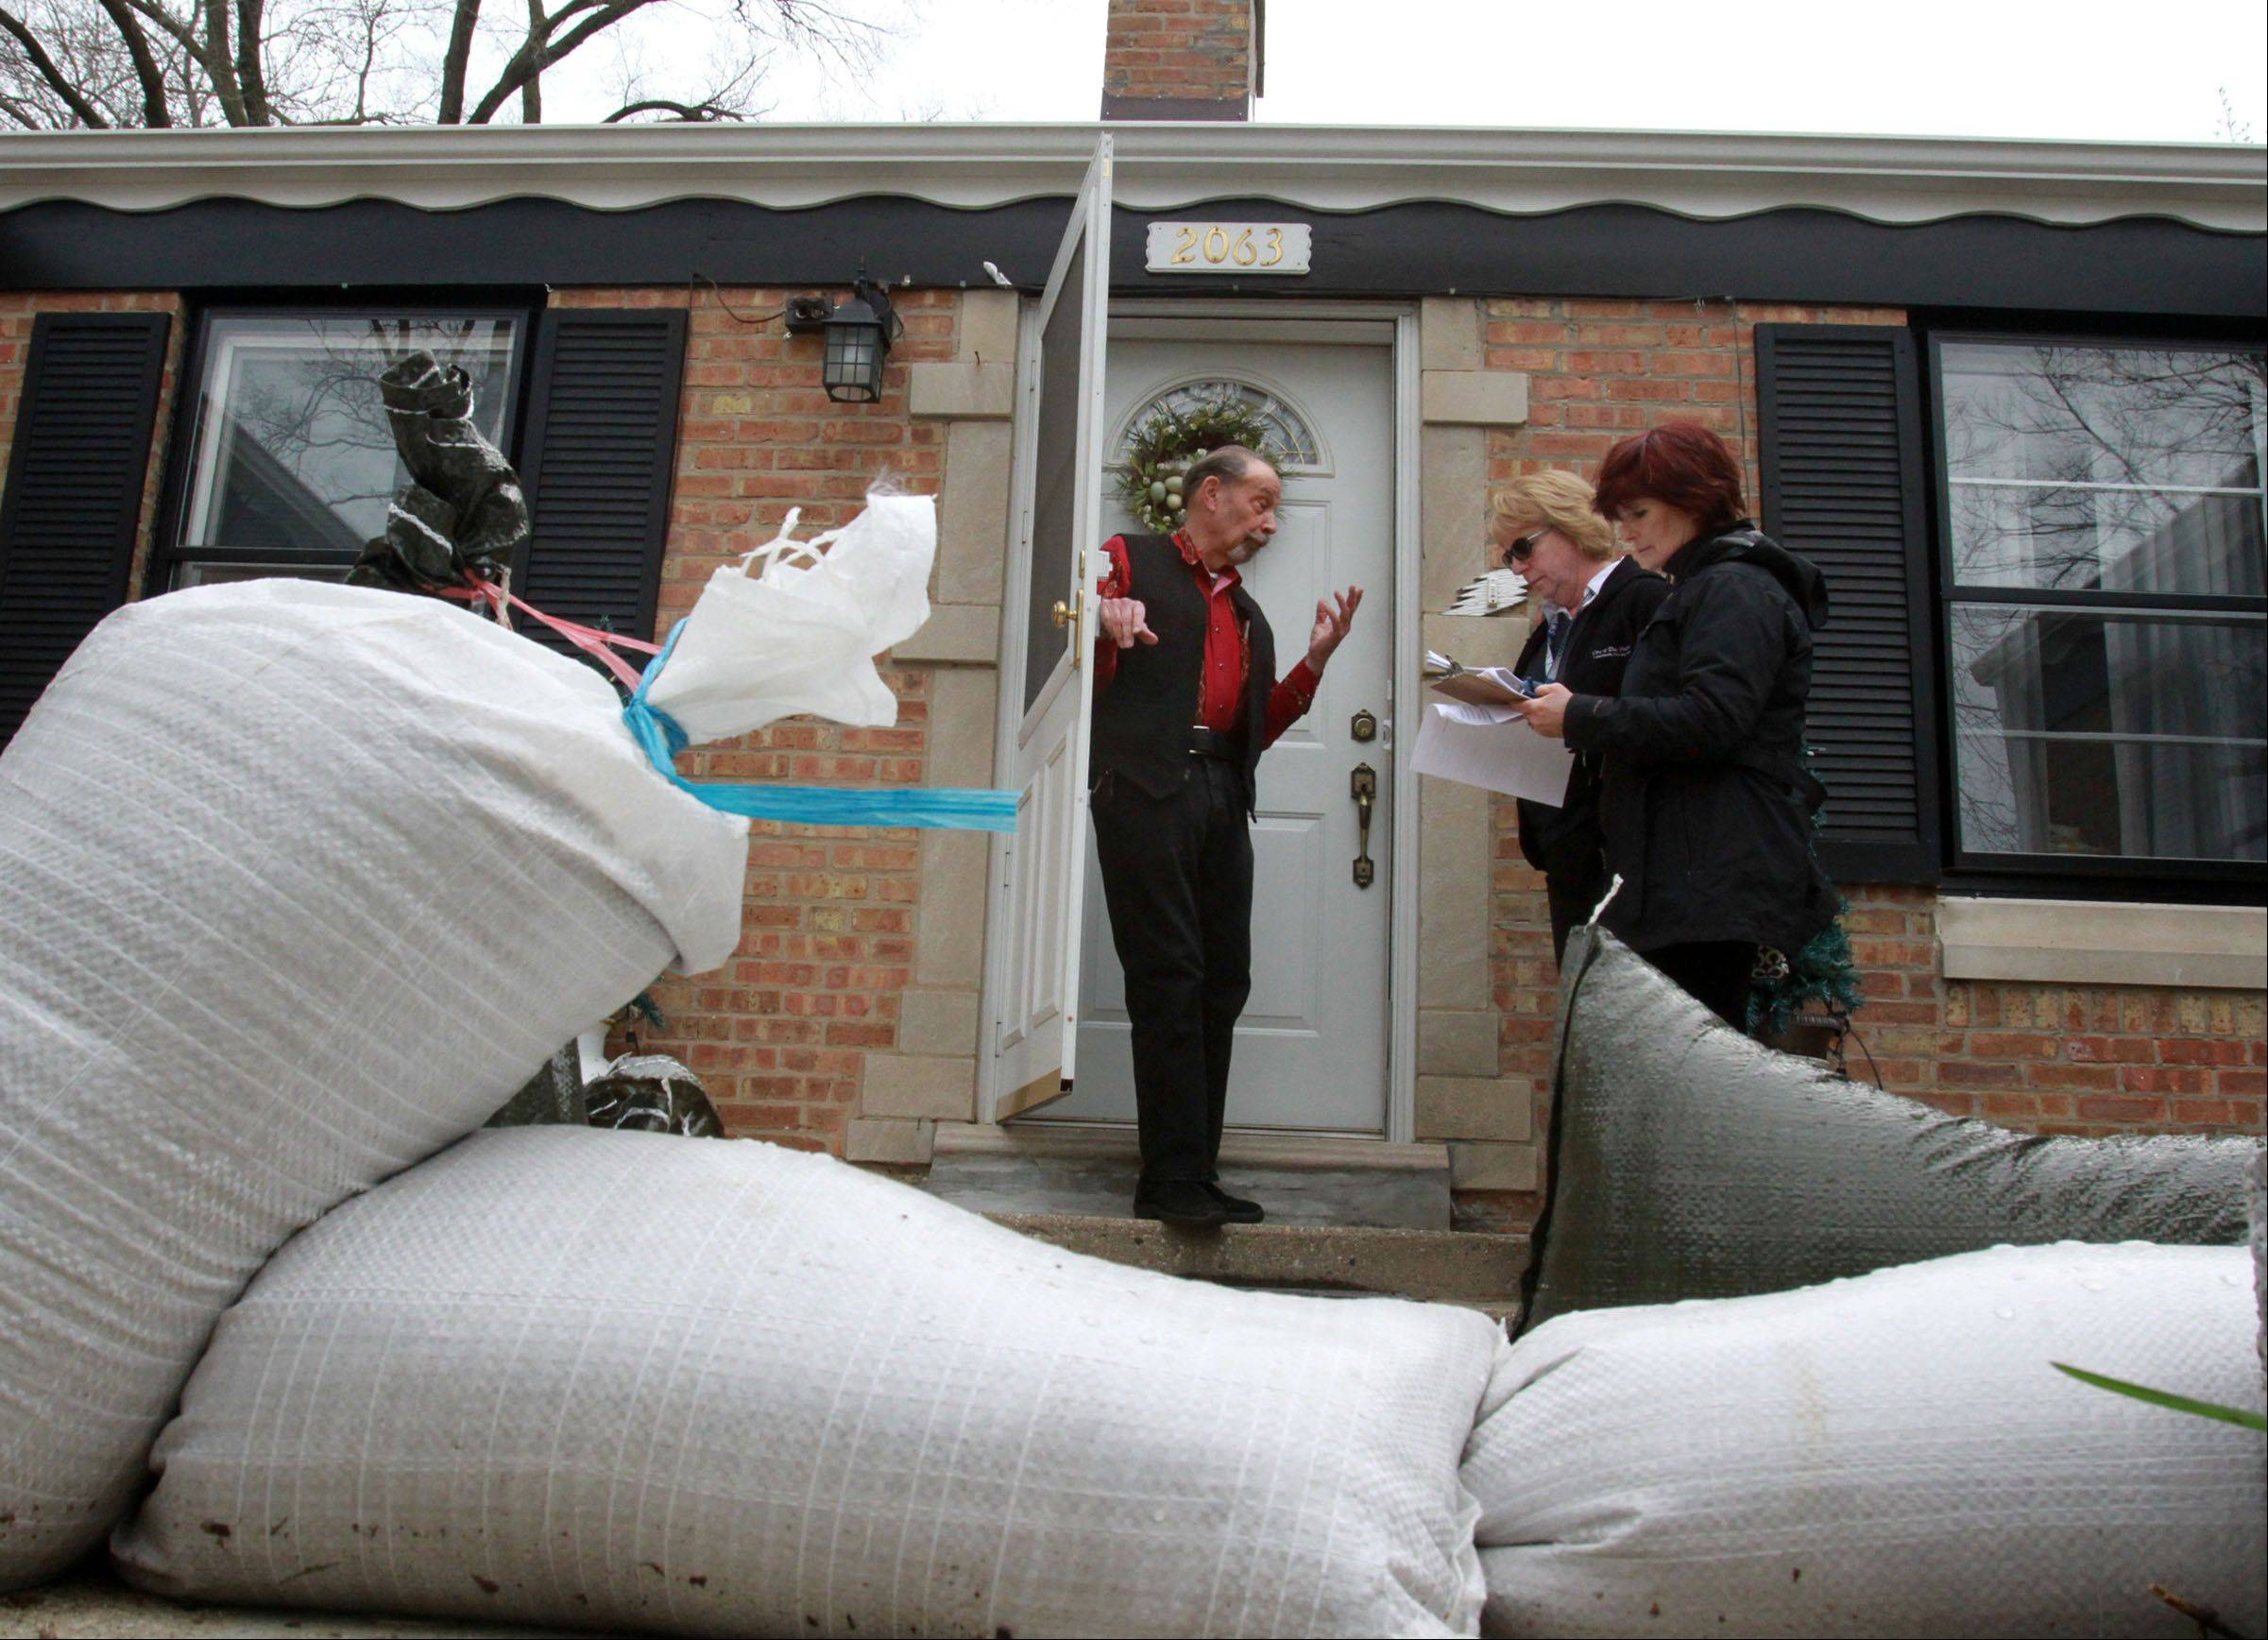 Des Plaines building inspectors Davorka Kirincic and Pam Lunsmann ask John Marton on Birch Street about flooding in his home and yard in Des Plaines on Tuesday, April 23.